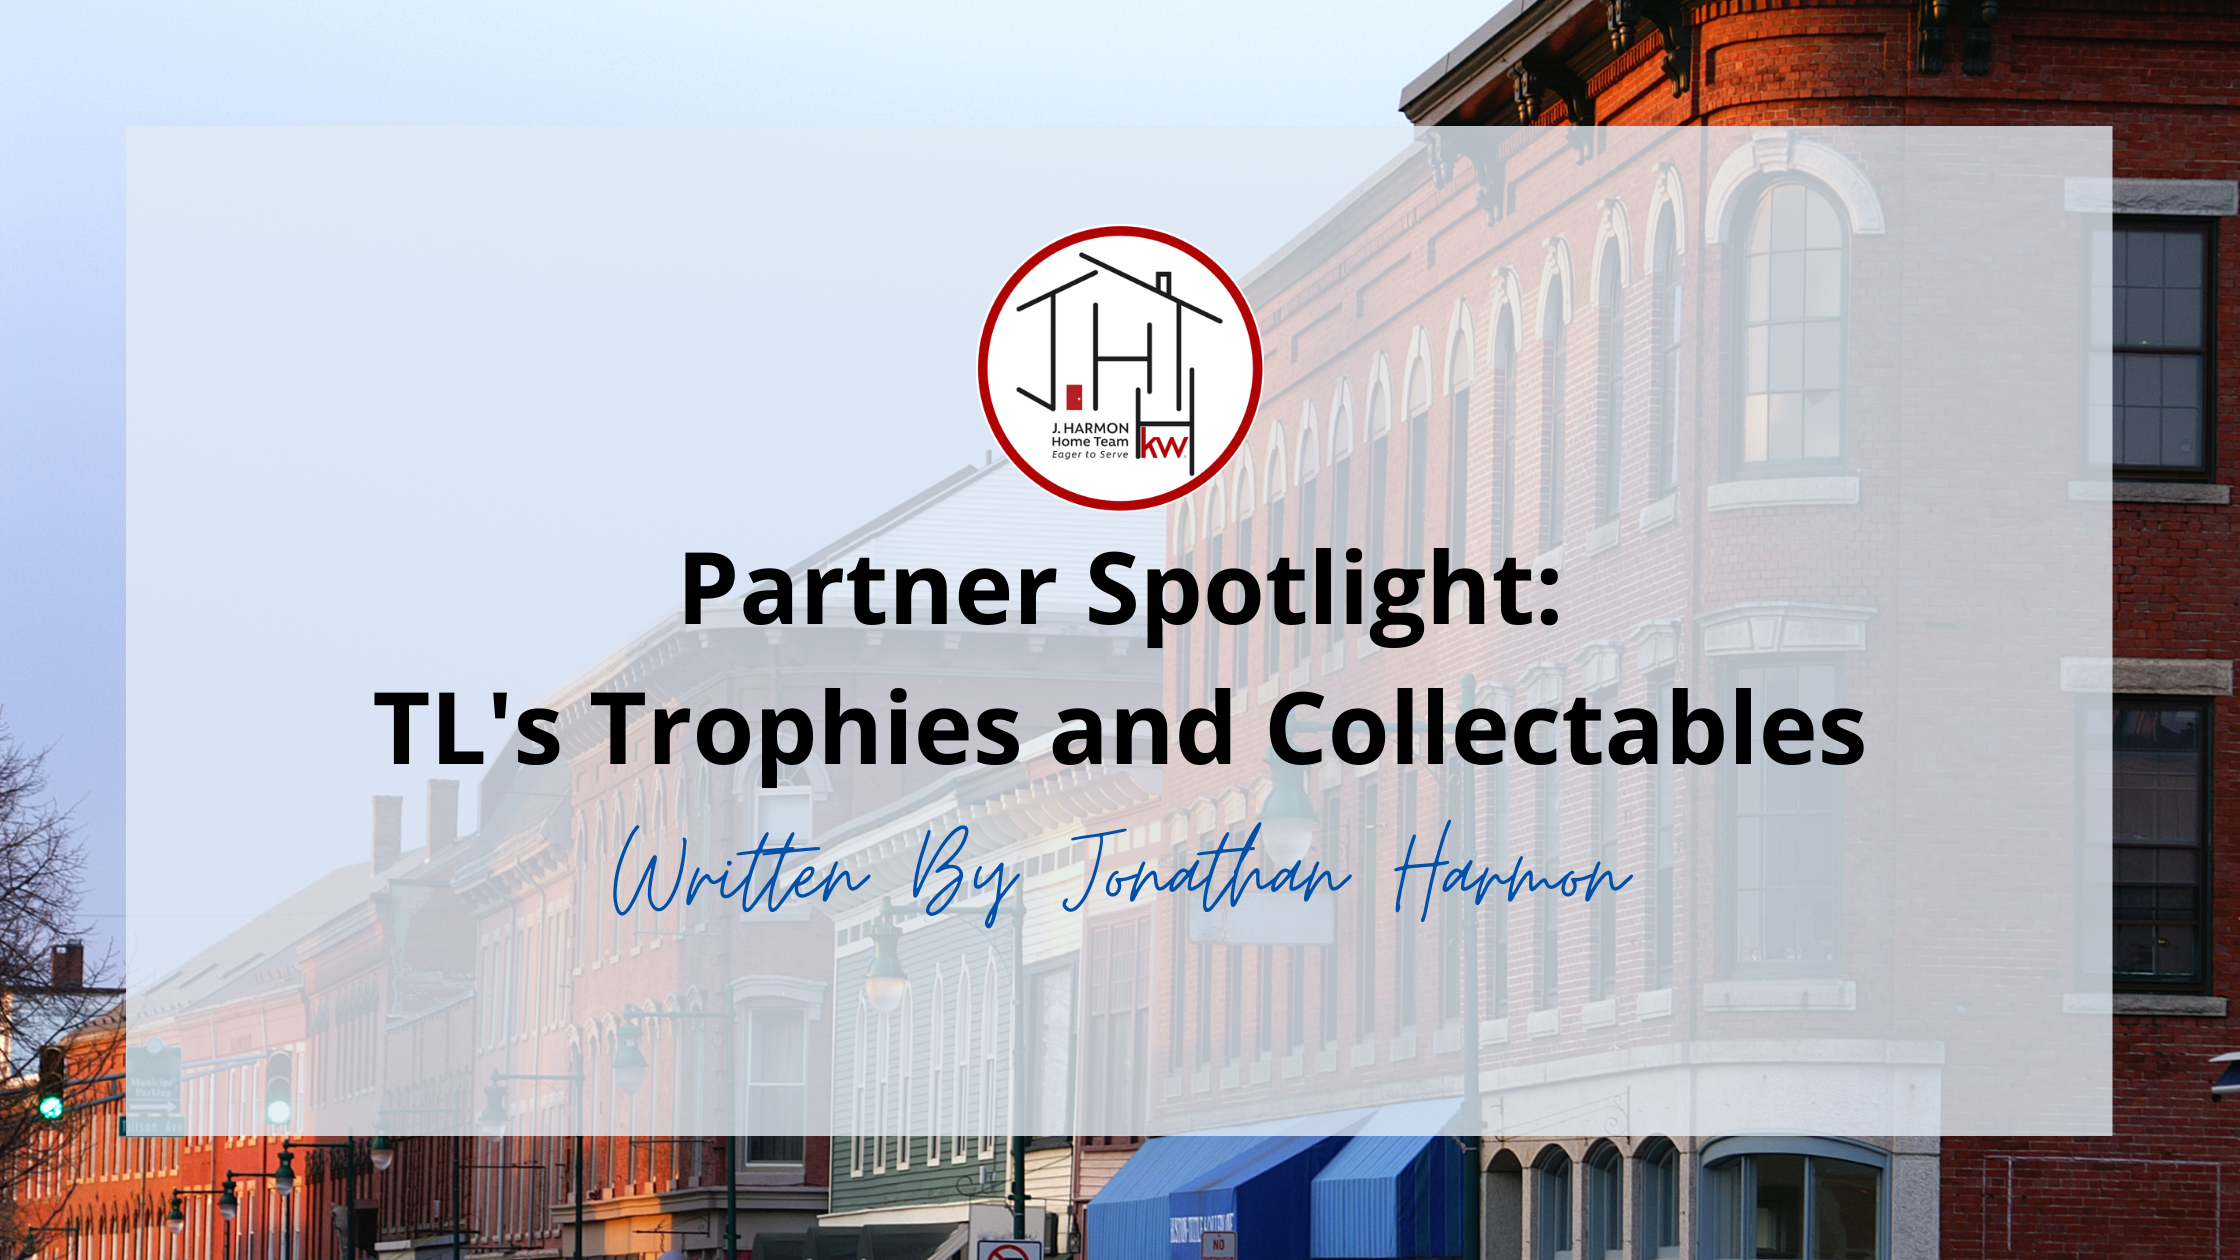 Partner Spotlight, TL's Trophies and Collectables